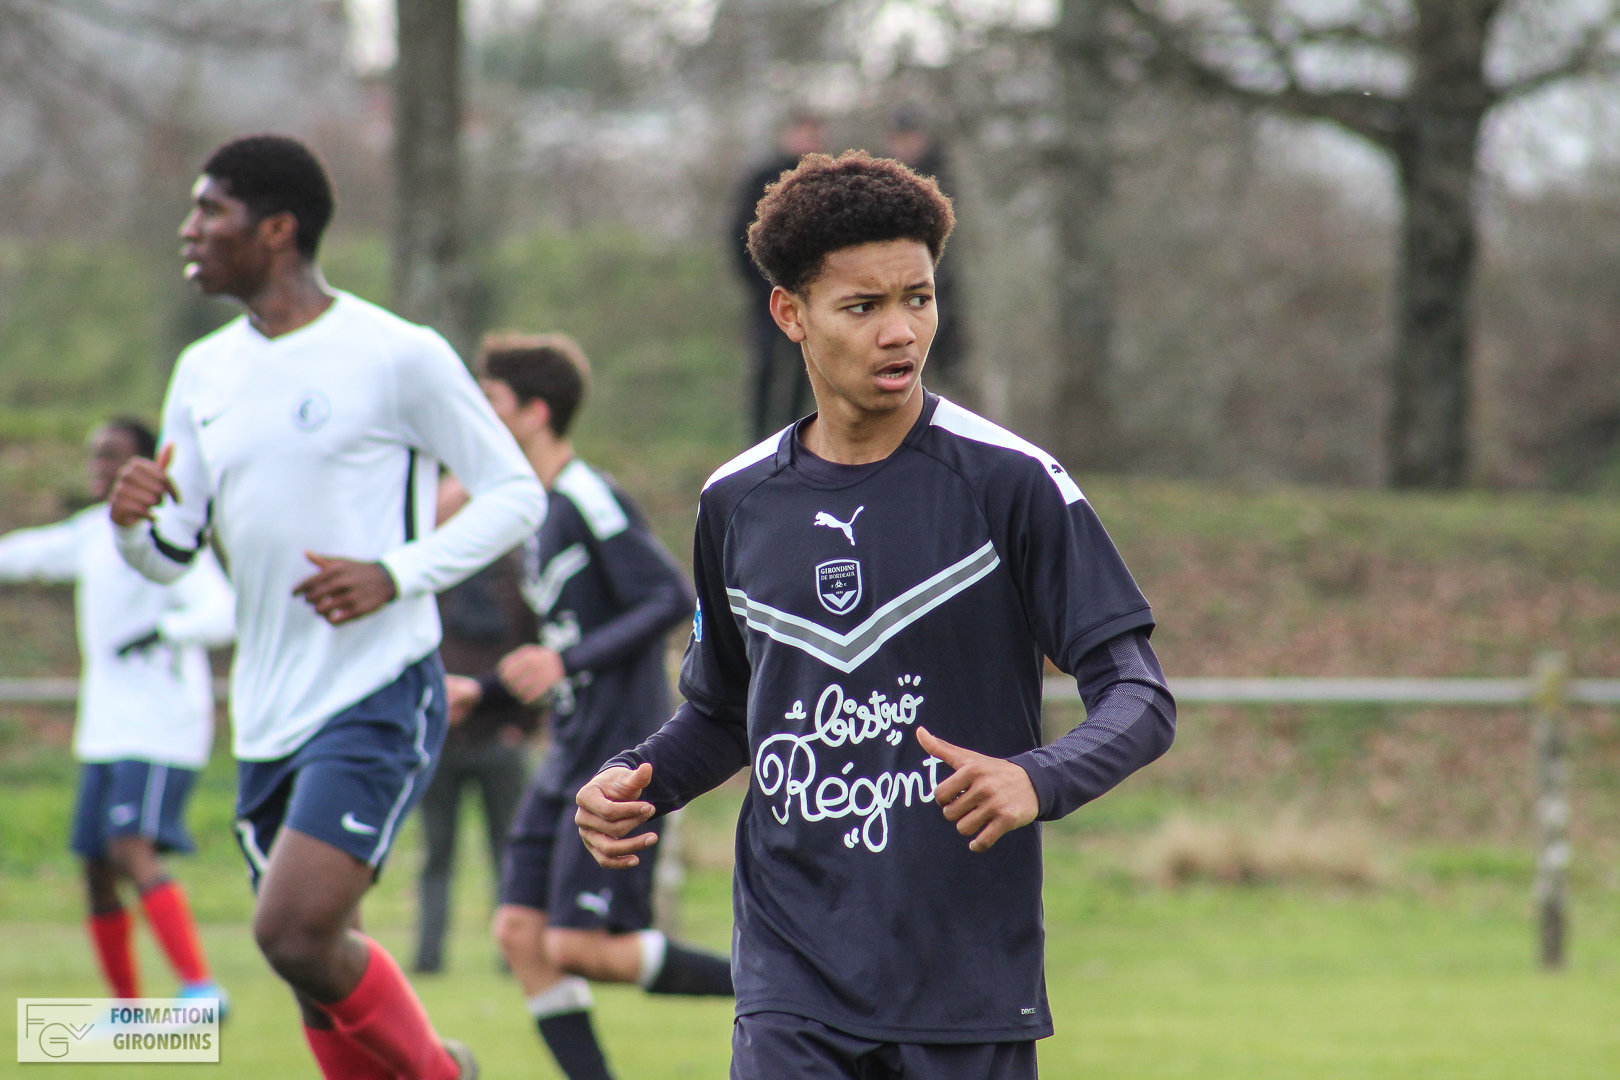 Cfa Girondins : Lenny Pirringuel forfait pour le rassemblement U16 - Formation Girondins